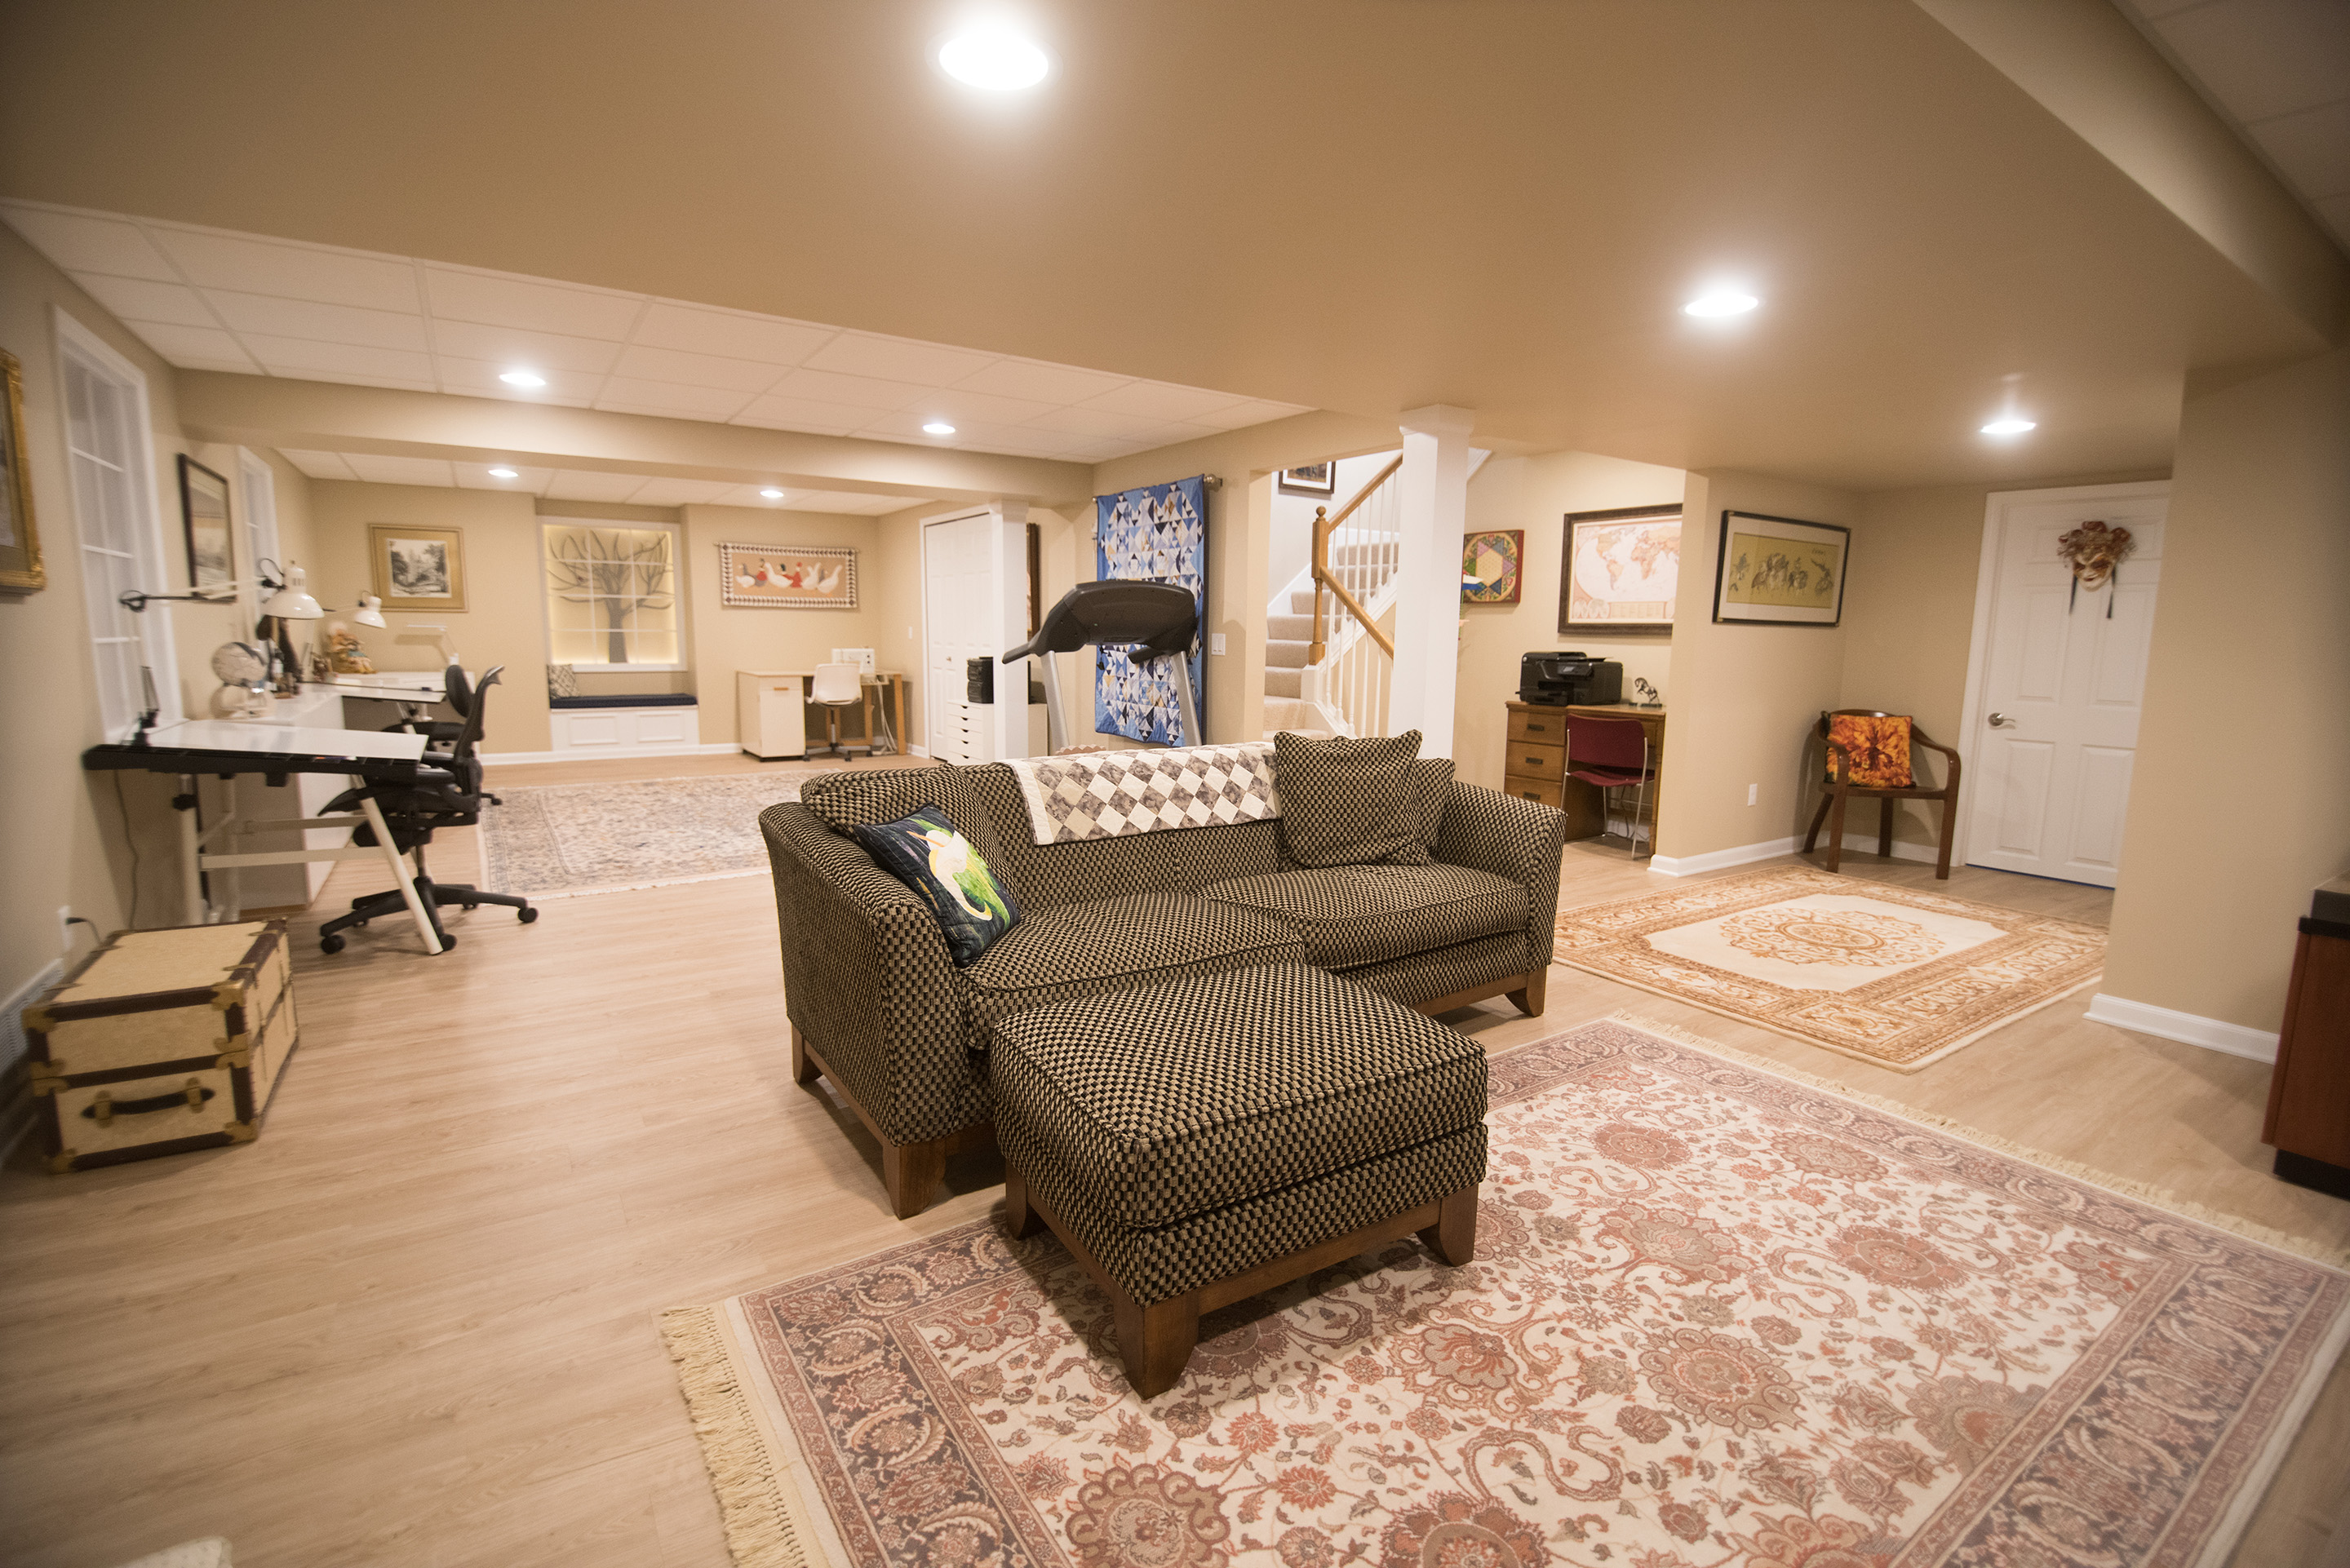 Plymouth Michigan basement living room with vinyl plank flooring and sectional couch